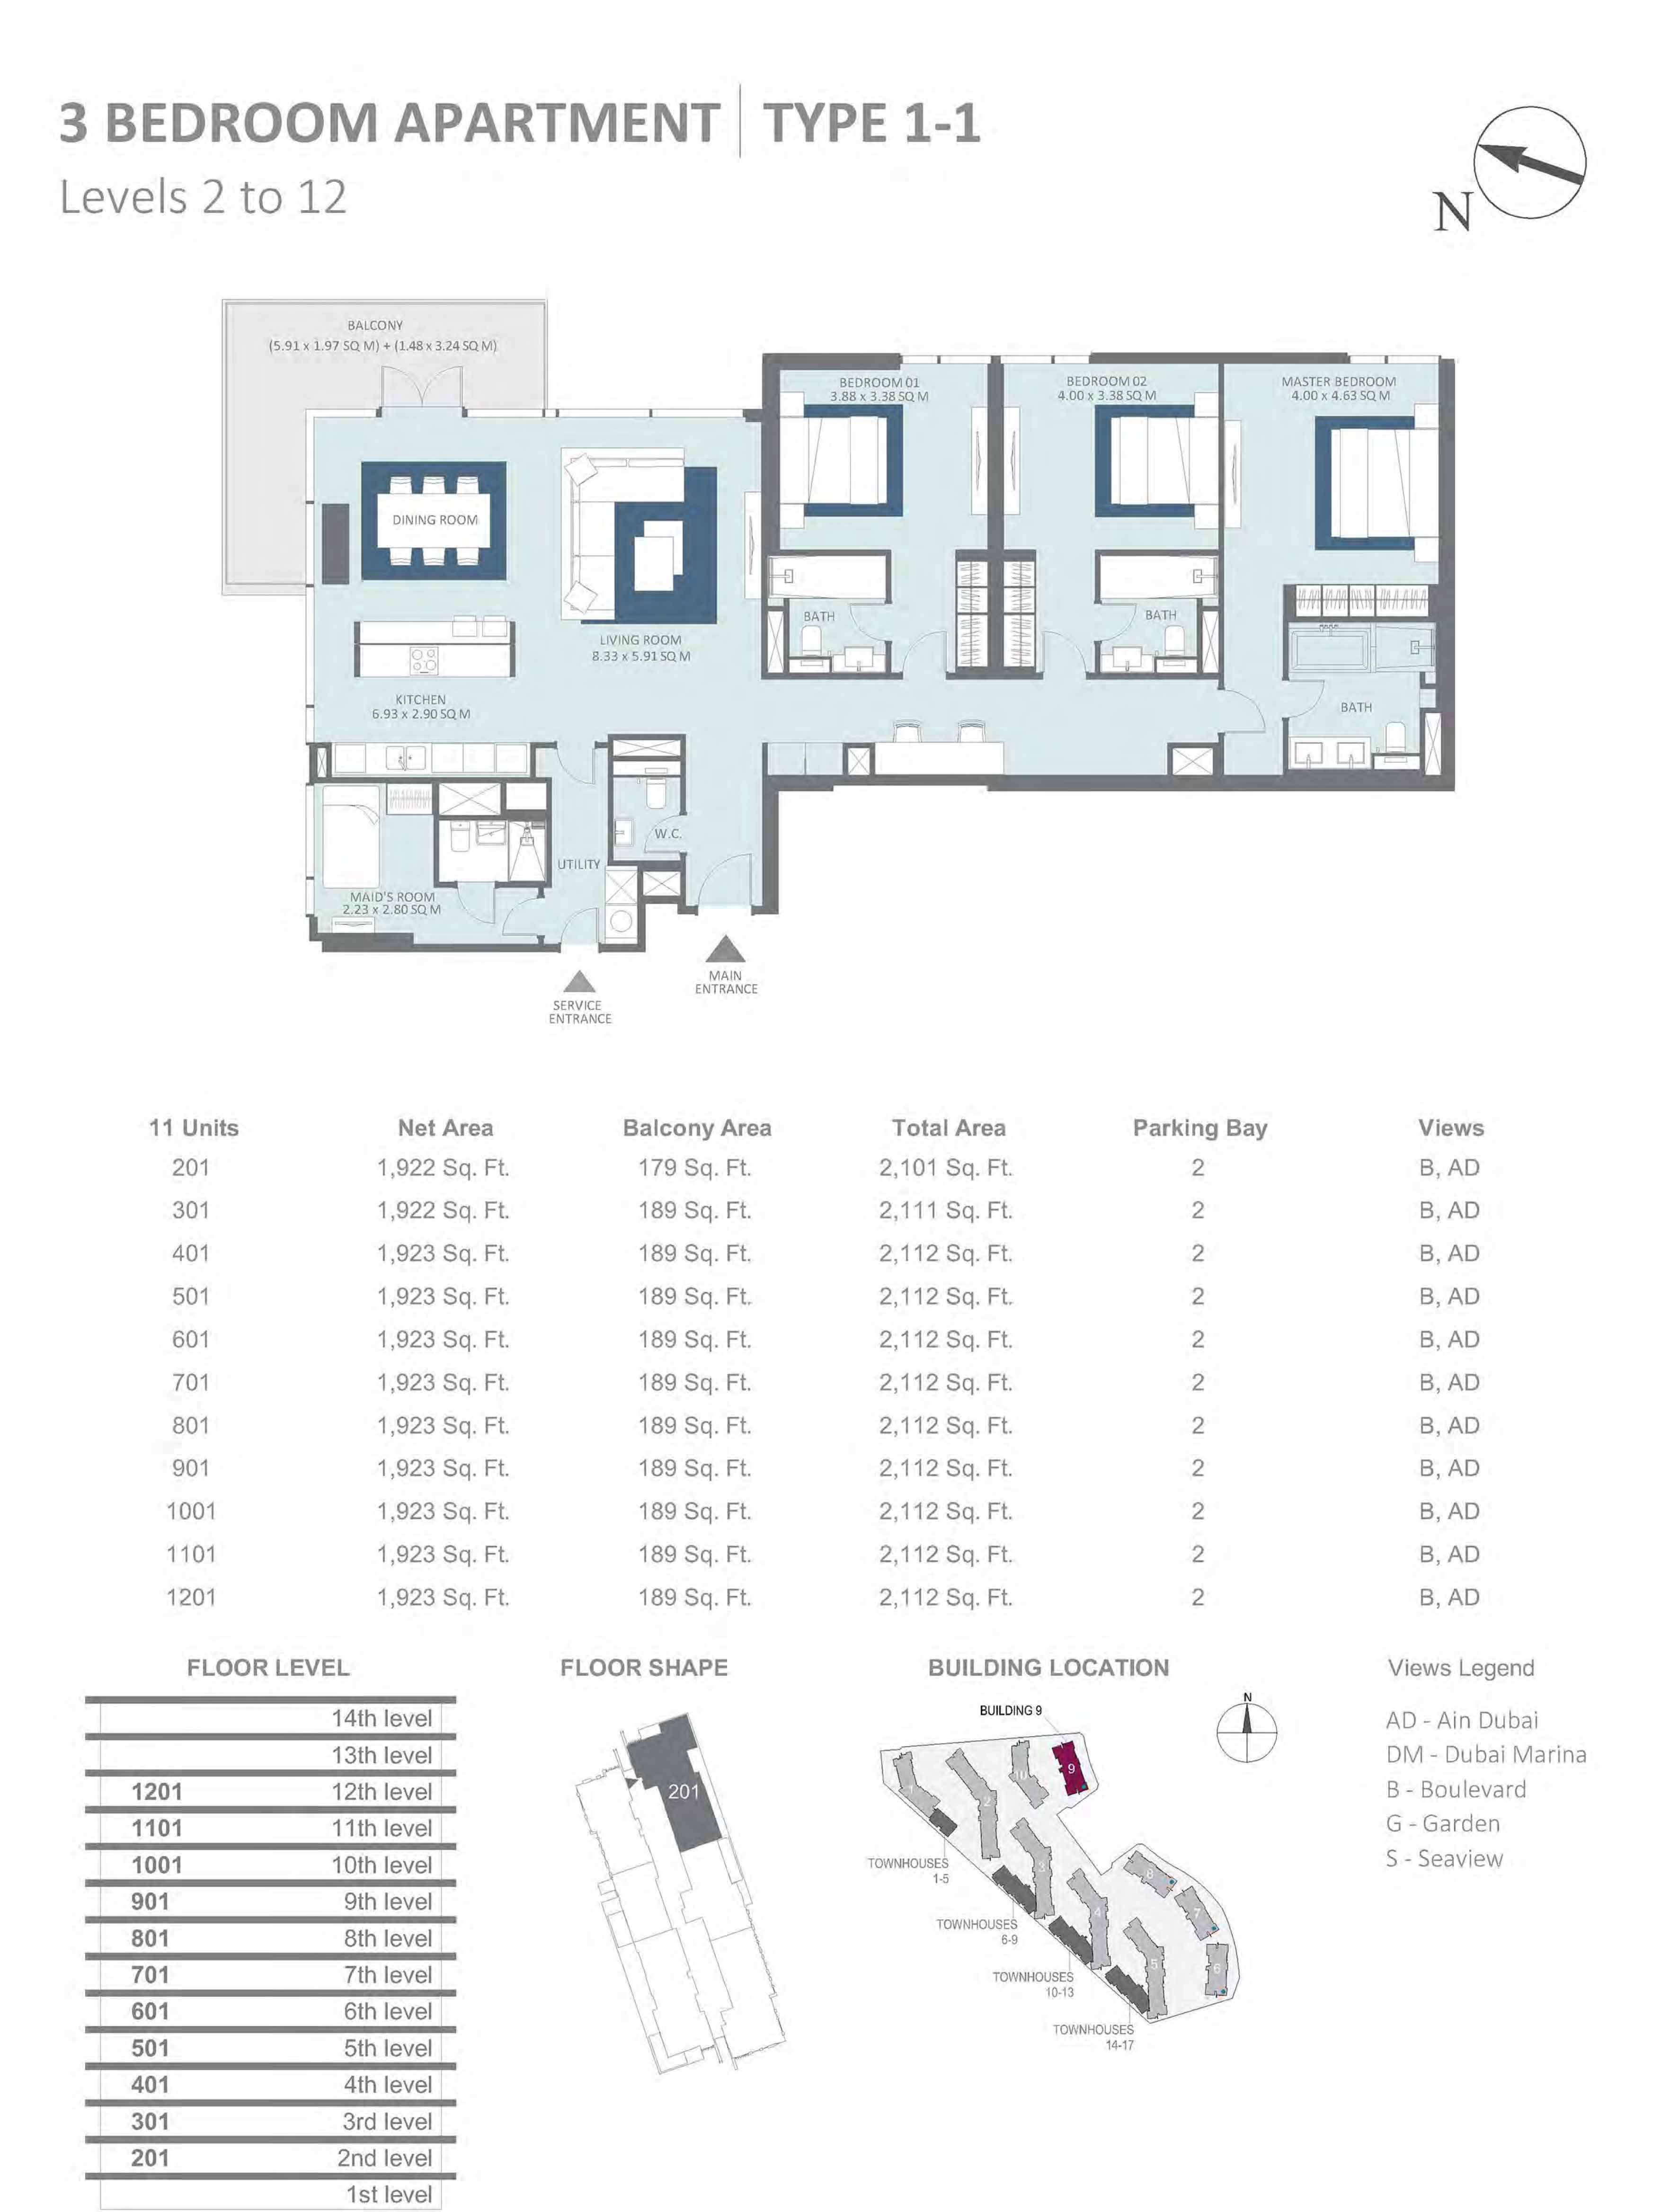 Building 9 - 3 Bedroom Type 1-1, Level 2-to-12 Size 2101 to 2112  sq. ft.